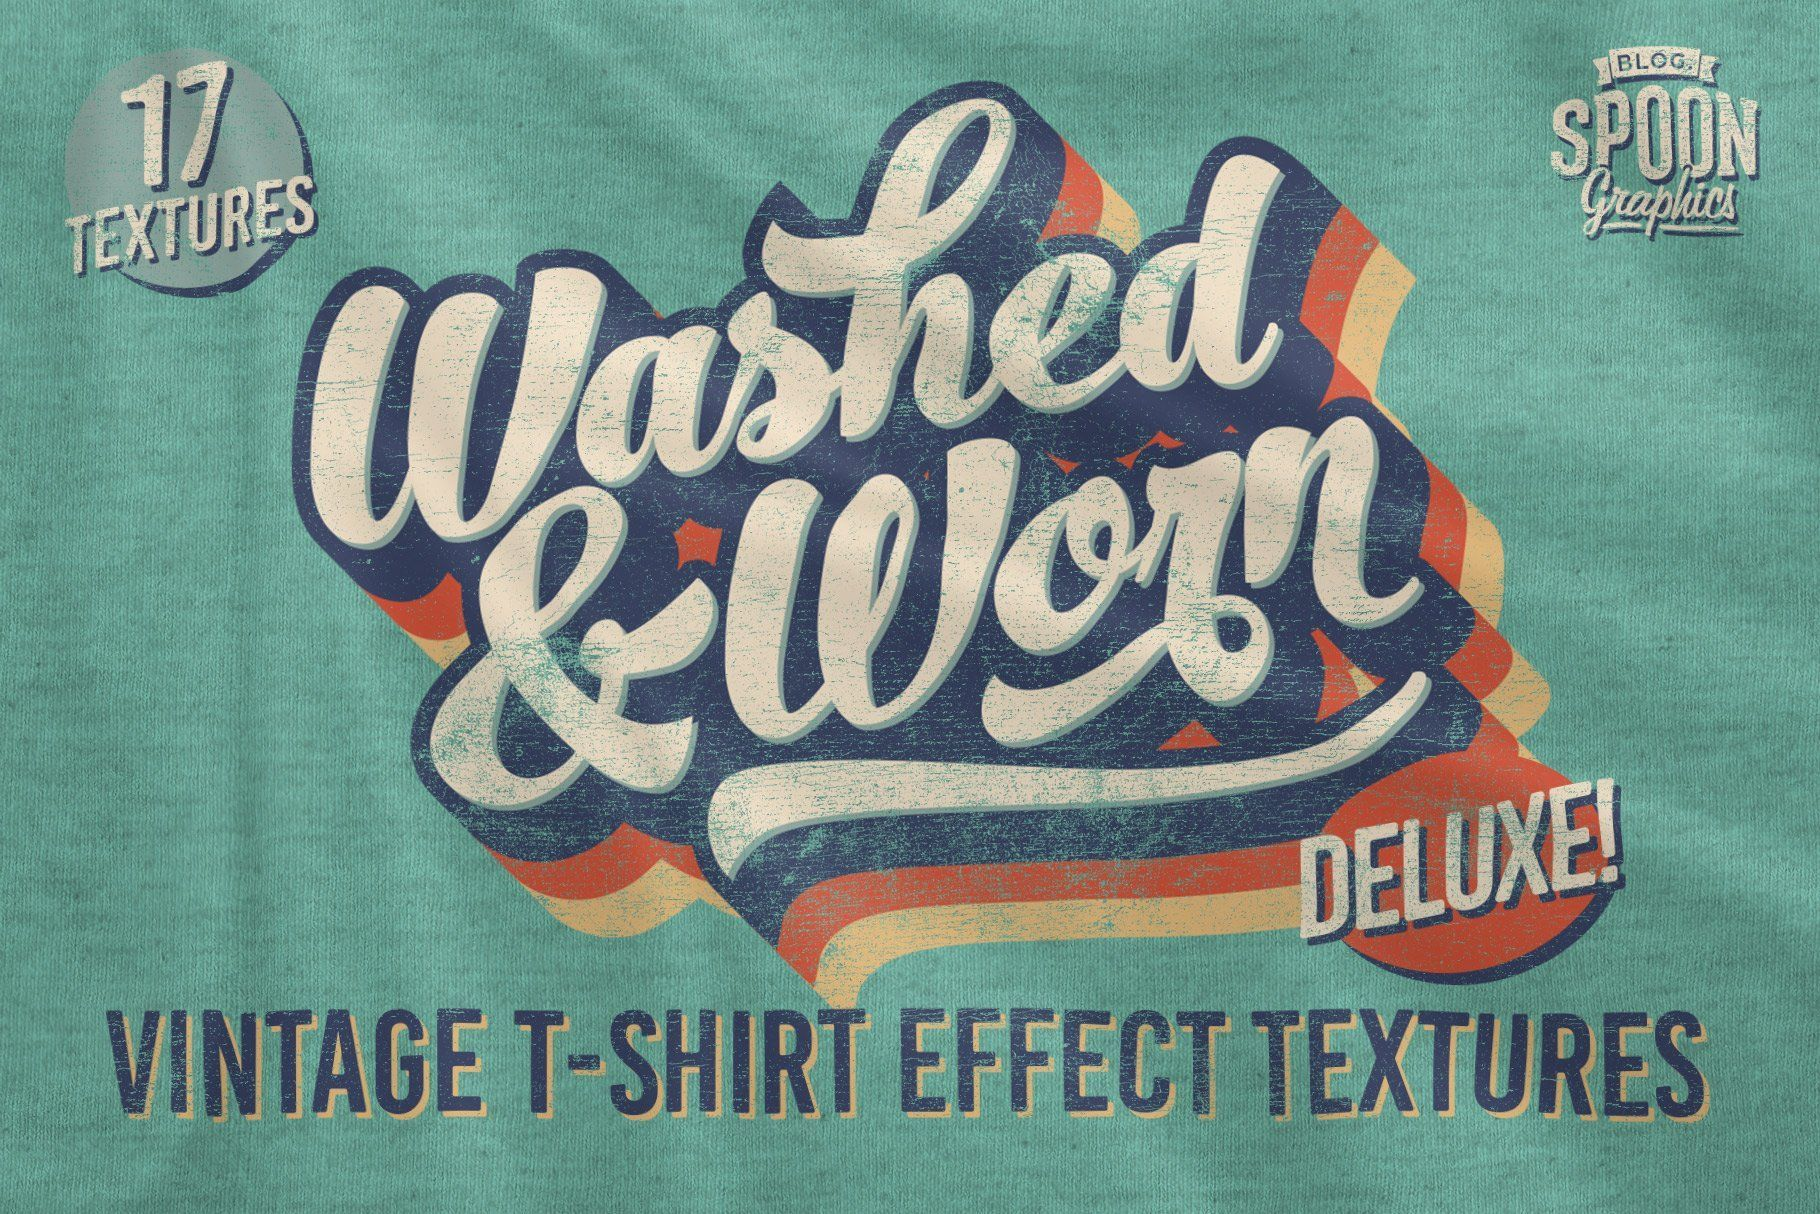 Washed Worn T Shirt Textures Pack Vintage Tshirts Texture Packs Texture